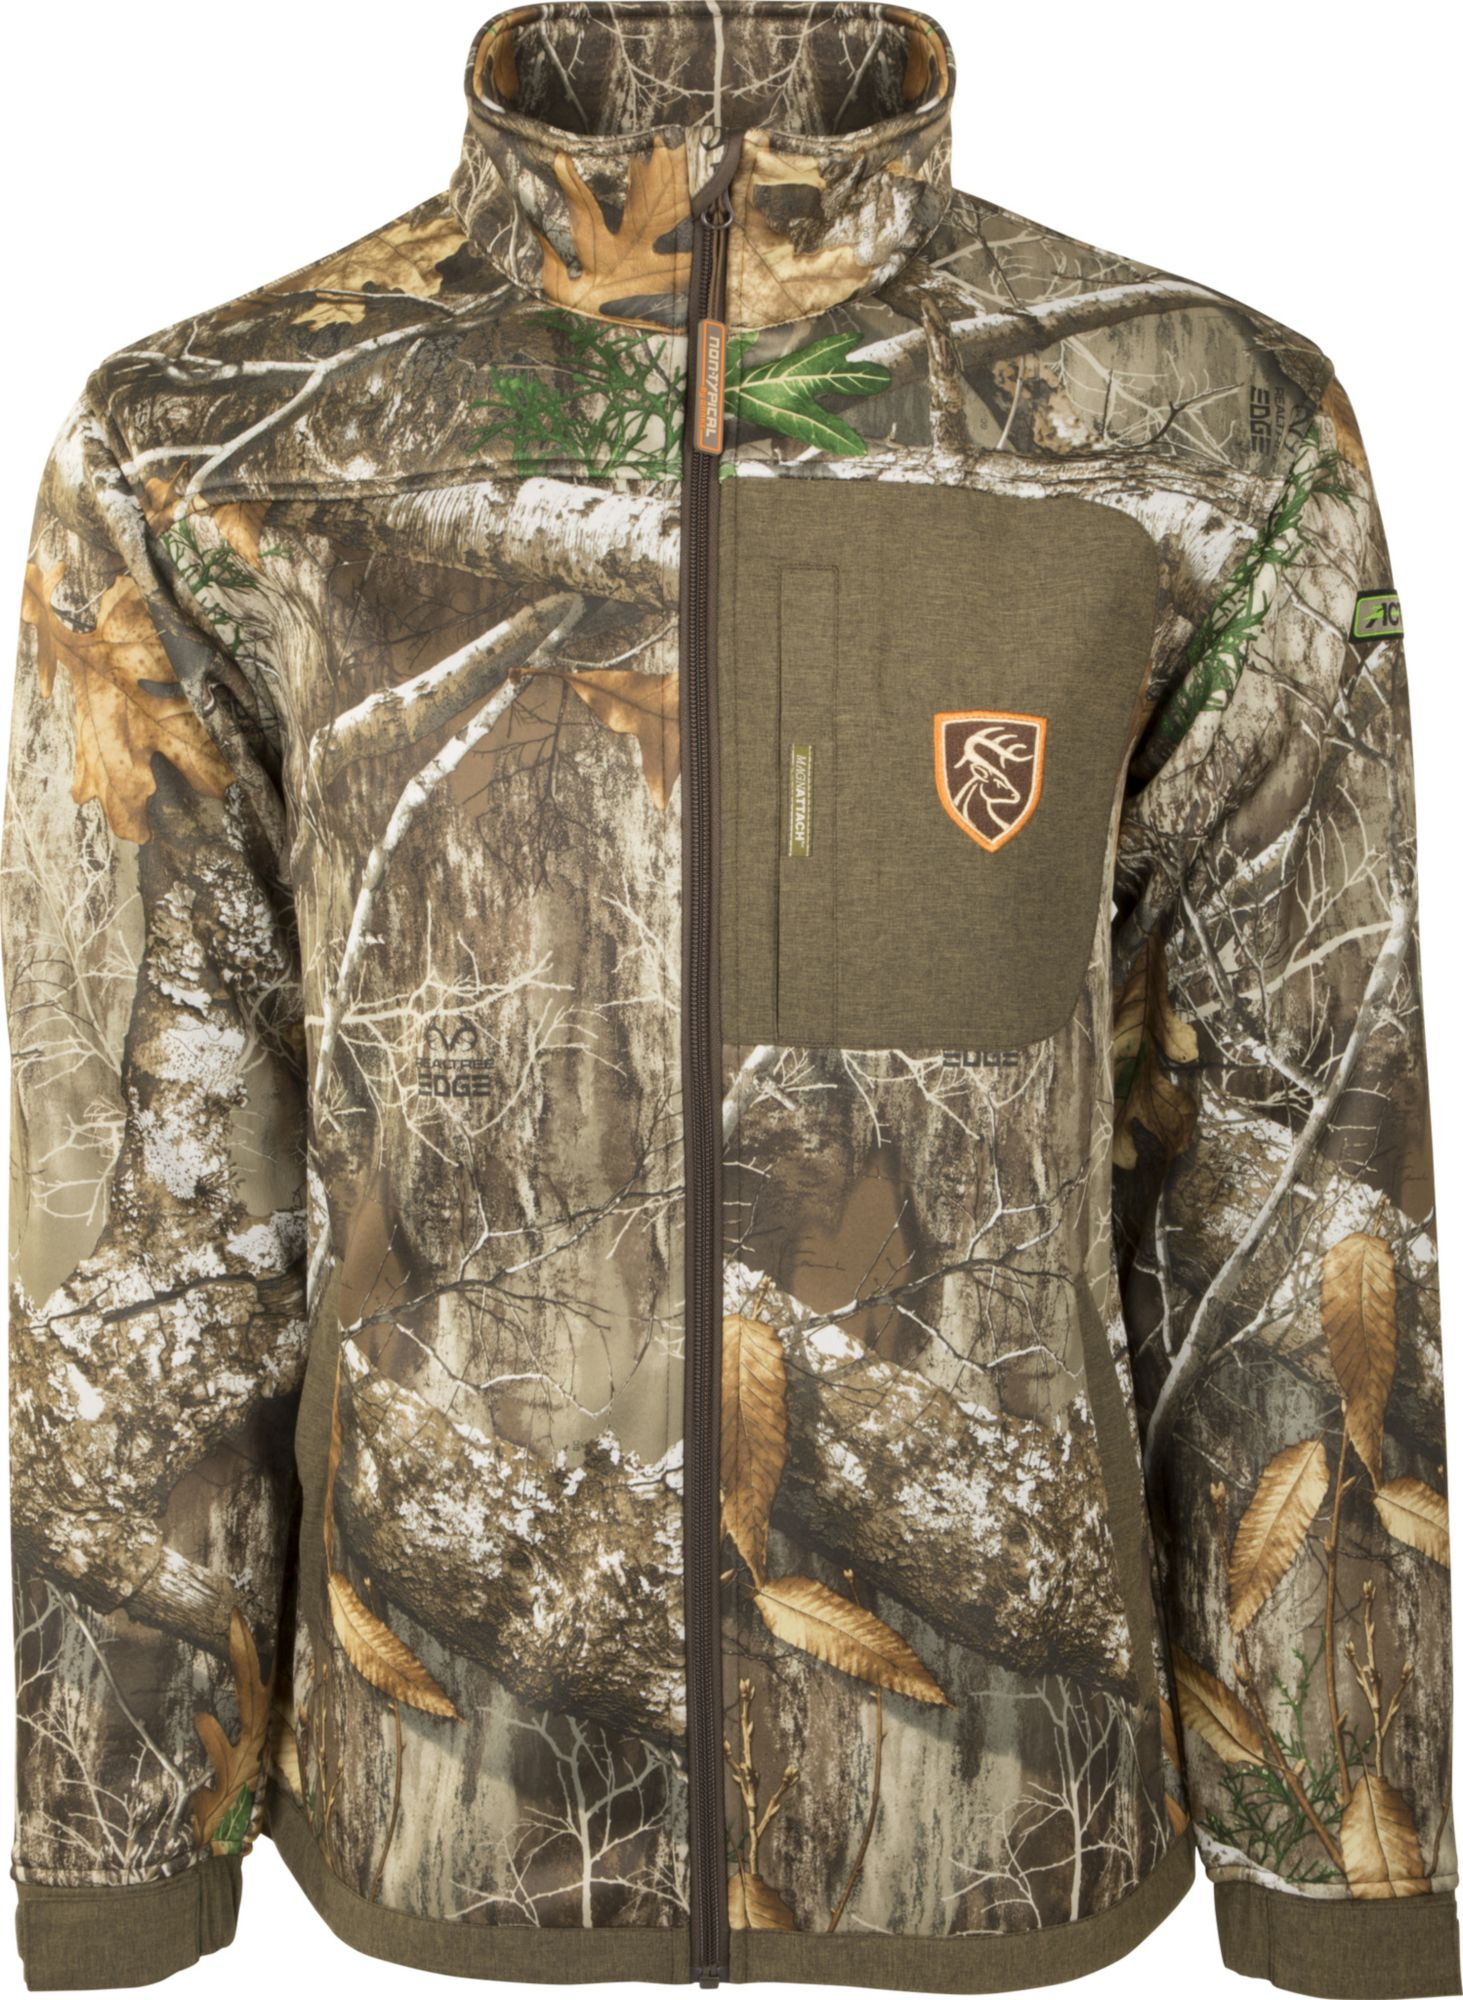 Drake Waterfowl Men's Non-Typical Endurance Full Zip Jacket with Agion Active XL, Size: Small, Multi thumbnail